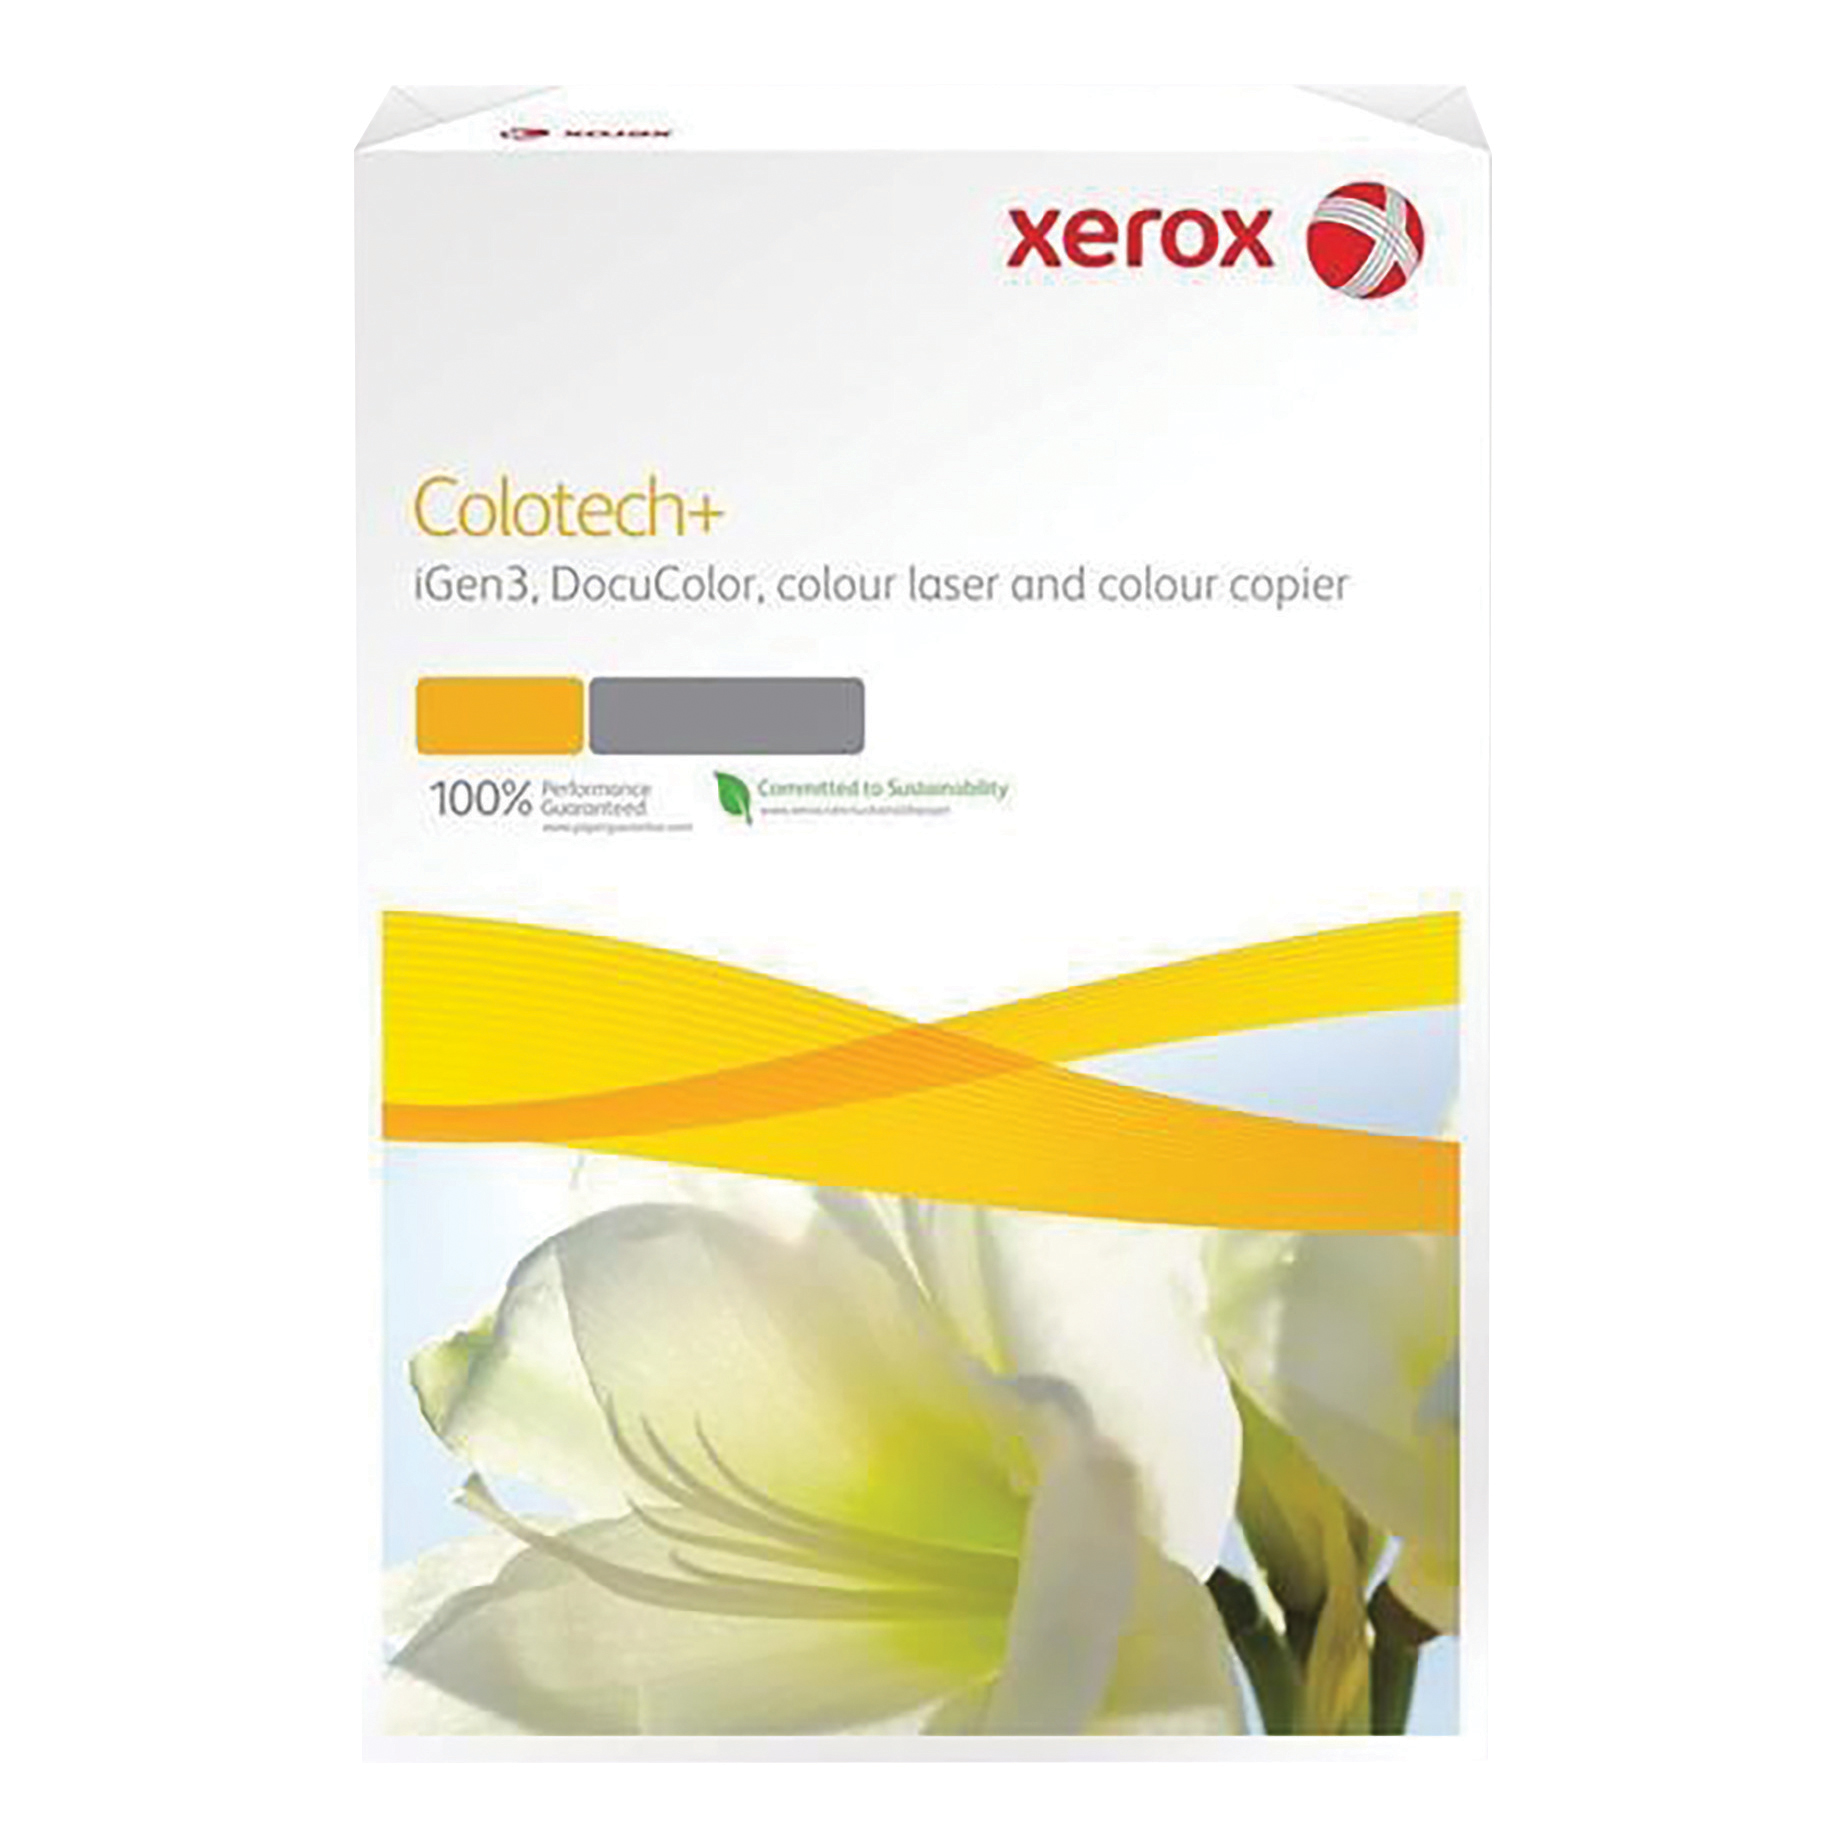 A3 Xerox FSC Colotech+ Digital Colour Paper Prem Ream-Wrapped ColorLok  90gsm A3 White Ref 64488500 Sheets